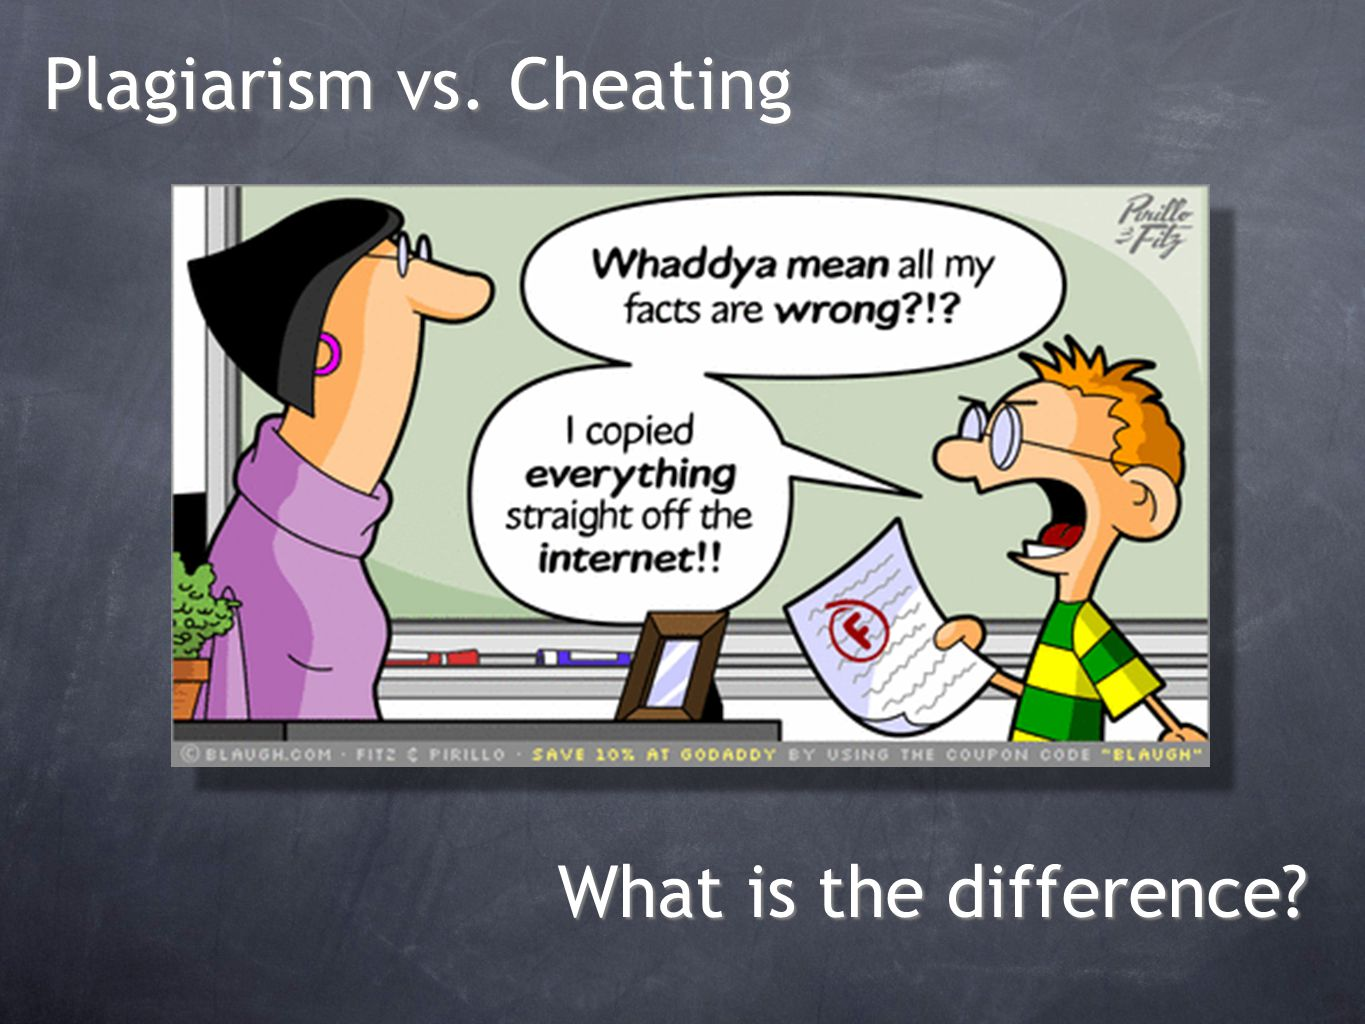 Cheating is receiving unauthorized help on an assignment, quiz or exam